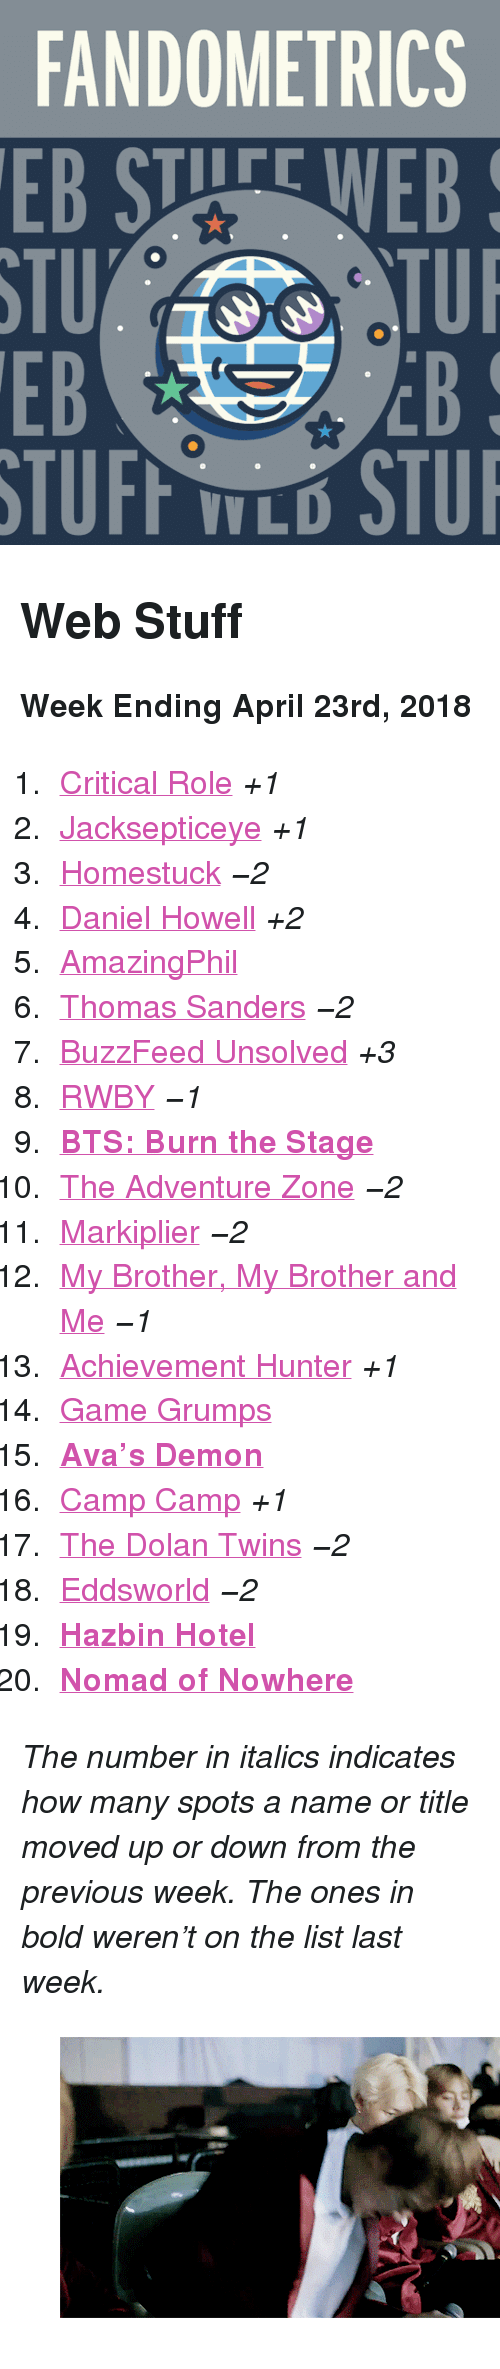 """markiplier: FANDOMETRICS  STU  EB  TUFF TLO STU <h2>Web Stuff</h2><p><b>Week Ending April 23rd, 2018</b></p><ol><li><a href=""""http://www.tumblr.com/search/critical%20role"""">Critical Role</a><i>+1</i></li>  <li><a href=""""http://www.tumblr.com/search/jacksepticeye"""">Jacksepticeye</a><i>+1</i></li>  <li><a href=""""http://www.tumblr.com/search/homestuck"""">Homestuck</a><i><i>−2</i></i></li>  <li><a href=""""http://www.tumblr.com/search/daniel%20howell"""">Daniel Howell</a><i>+2</i></li>  <li><a href=""""http://www.tumblr.com/search/amazingphil"""">AmazingPhil</a></li>  <li><a href=""""http://www.tumblr.com/search/thomas%20sanders"""">Thomas Sanders</a><i><i>−2</i></i></li>  <li><a href=""""http://www.tumblr.com/search/buzzfeed%20unsolved"""">BuzzFeed Unsolved</a><i>+3</i></li>  <li><a href=""""http://www.tumblr.com/search/rwby"""">RWBY</a><i><i>−1</i></i></li>  <li><a href=""""http://www.tumblr.com/search/burn%20the%20stage""""><b>BTS: Burn the Stage</b></a></li>  <li><a href=""""http://www.tumblr.com/search/the%20adventure%20zone"""">The Adventure Zone</a><i><i>−2</i></i></li>  <li><a href=""""http://www.tumblr.com/search/markiplier"""">Markiplier</a><i><i>−2</i></i></li>  <li><a href=""""http://www.tumblr.com/search/mbmbam"""">My Brother, My Brother and Me</a><i><i>−1</i></i></li>  <li><a href=""""http://www.tumblr.com/search/achievement%20hunter"""">Achievement Hunter</a><i>+1</i></li>  <li><a href=""""http://www.tumblr.com/search/game%20grumps"""">Game Grumps</a></li>  <li><a href=""""http://www.tumblr.com/search/avas%20demon""""><b>Ava&rsquo;s Demon</b></a></li>  <li><a href=""""http://www.tumblr.com/search/camp%20camp"""">Camp Camp</a><i>+1</i></li>  <li><a href=""""http://www.tumblr.com/search/dolan%20twins"""">The Dolan Twins</a><i><i>−2</i></i></li>  <li><a href=""""http://www.tumblr.com/search/eddsworld"""">Eddsworld</a><i><i>−2</i></i></li>  <li><a href=""""http://www.tumblr.com/search/hazbin%20hotel""""><b>Hazbin Hotel</b></a></li>  <li><a href=""""http://www.tumblr.com/search/nomad%20of%20nowhere""""><b>Nomad of Nowhere</b></a></li></ol><p><i>The number in italics """